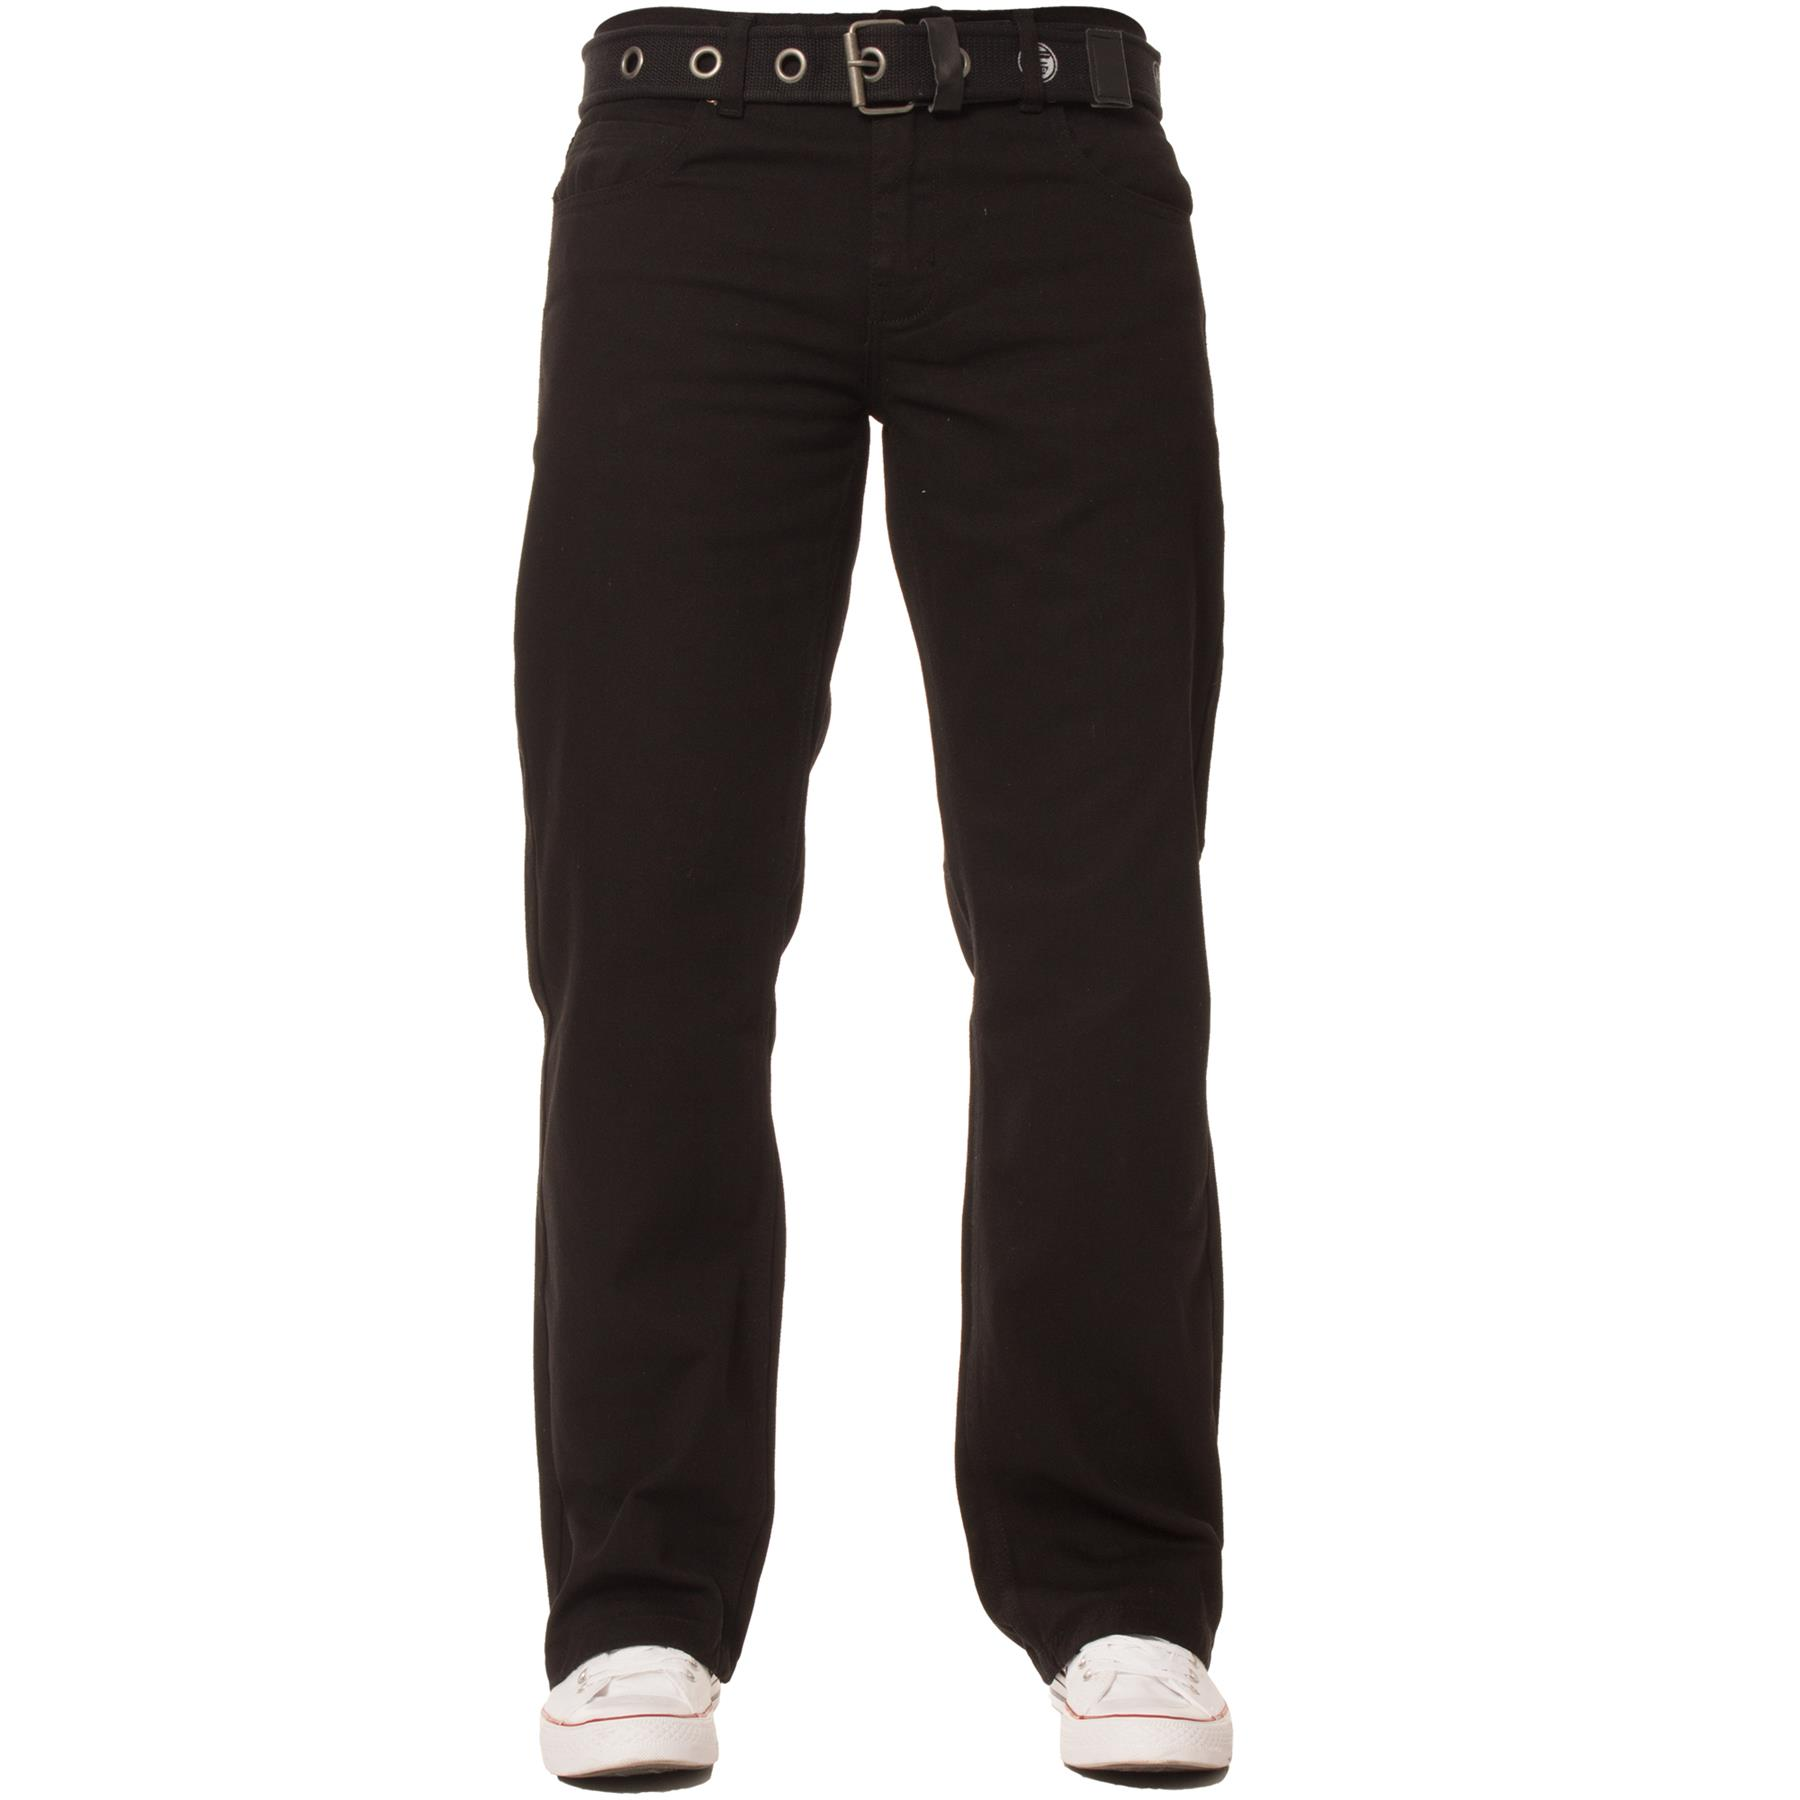 Enzo-Mens-Jeans-Big-Tall-Leg-King-Size-Denim-Pants-Chino-Trousers-Waist-44-034-60-034 miniature 4